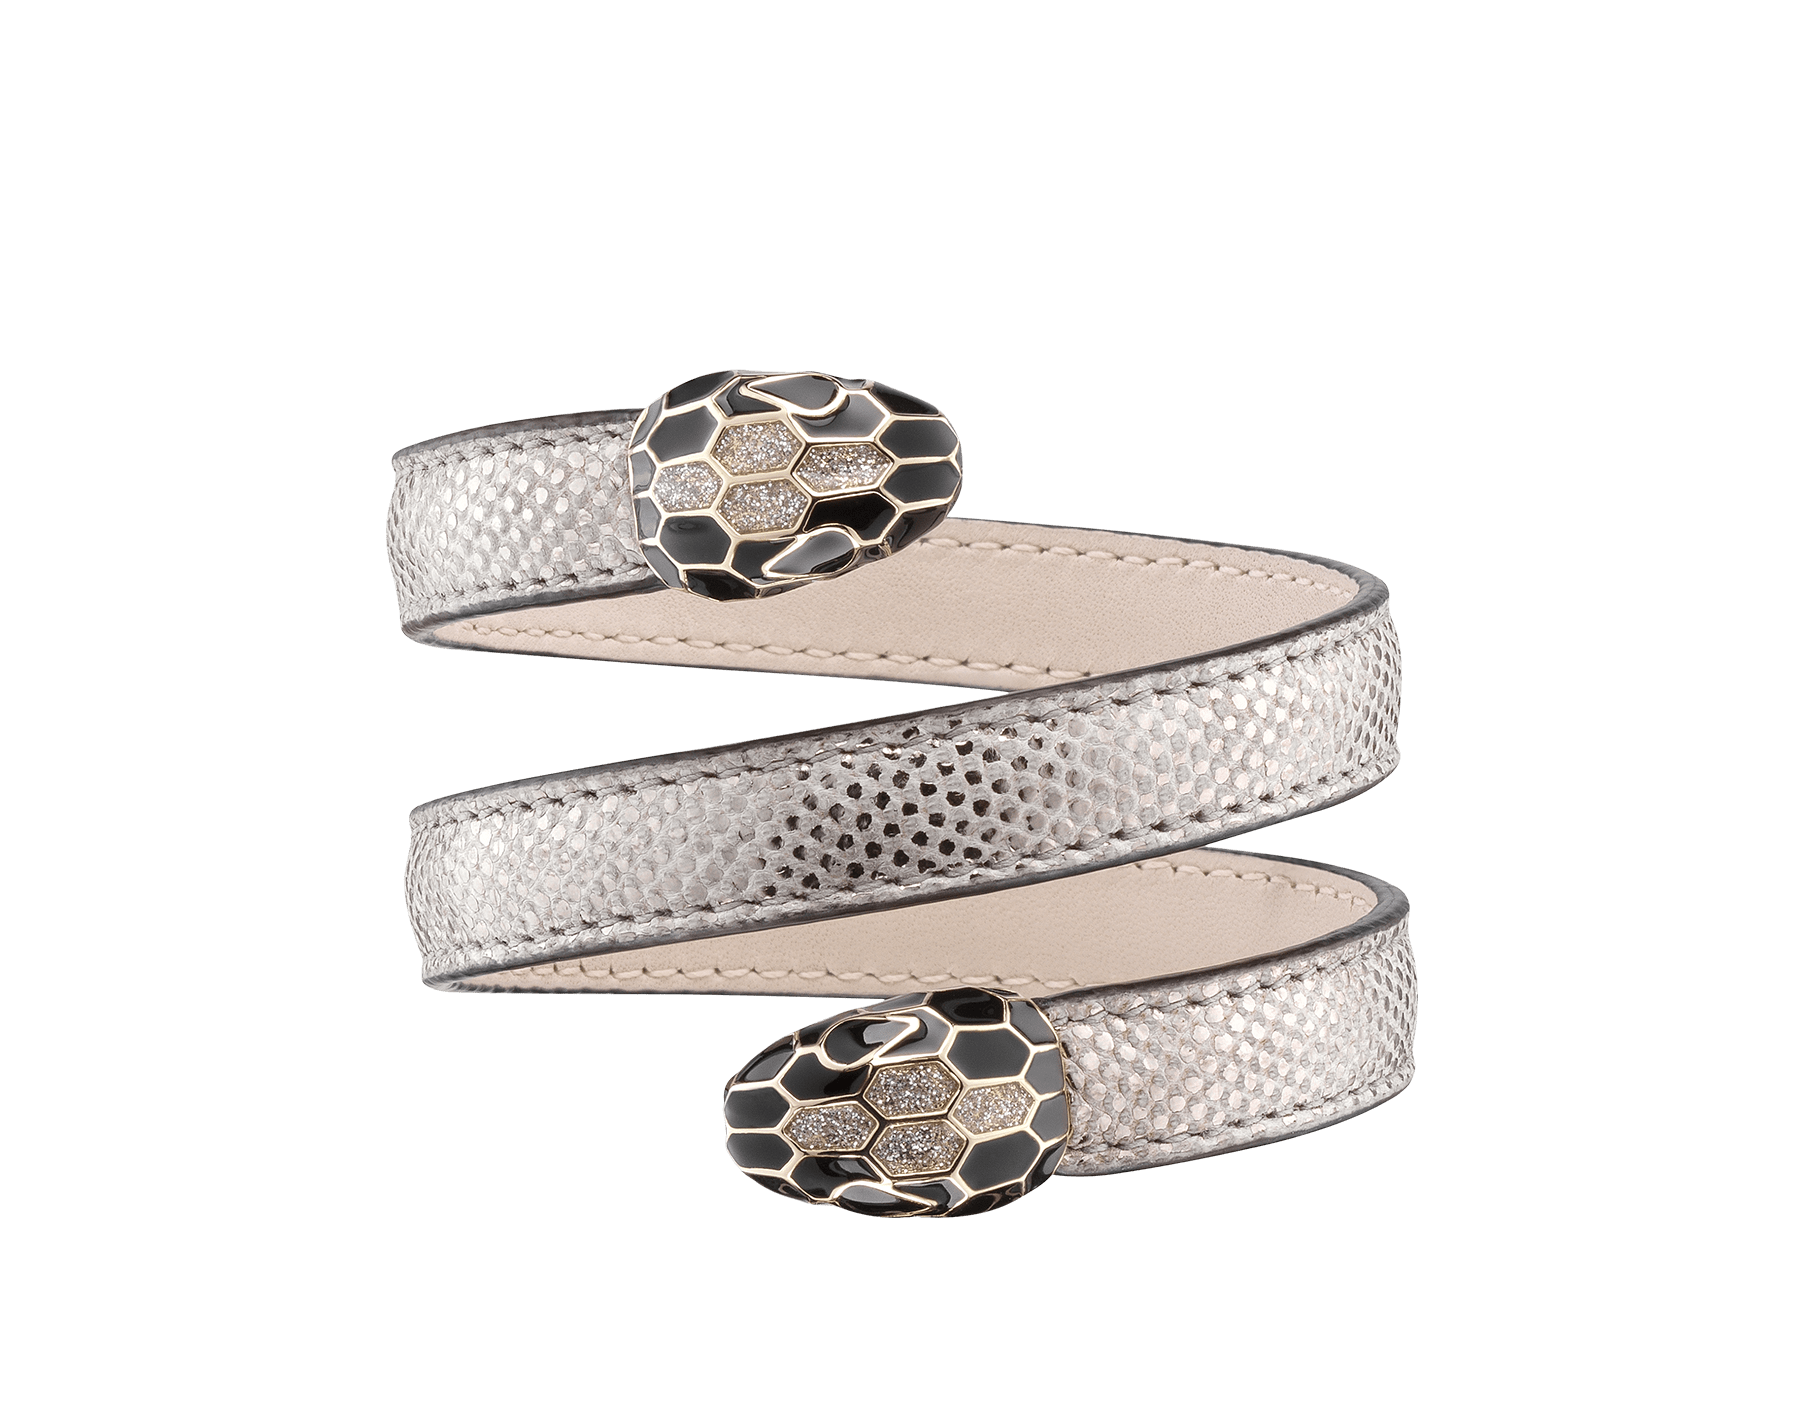 Multi-coiled rigid Cleopatra bracelet in silver metallic karung skin, with brass light gold plated hardware. Double tempting Serpenti head finished in shiny black and glitter silver enamel, with eyes in black enamel. 285650 image 1